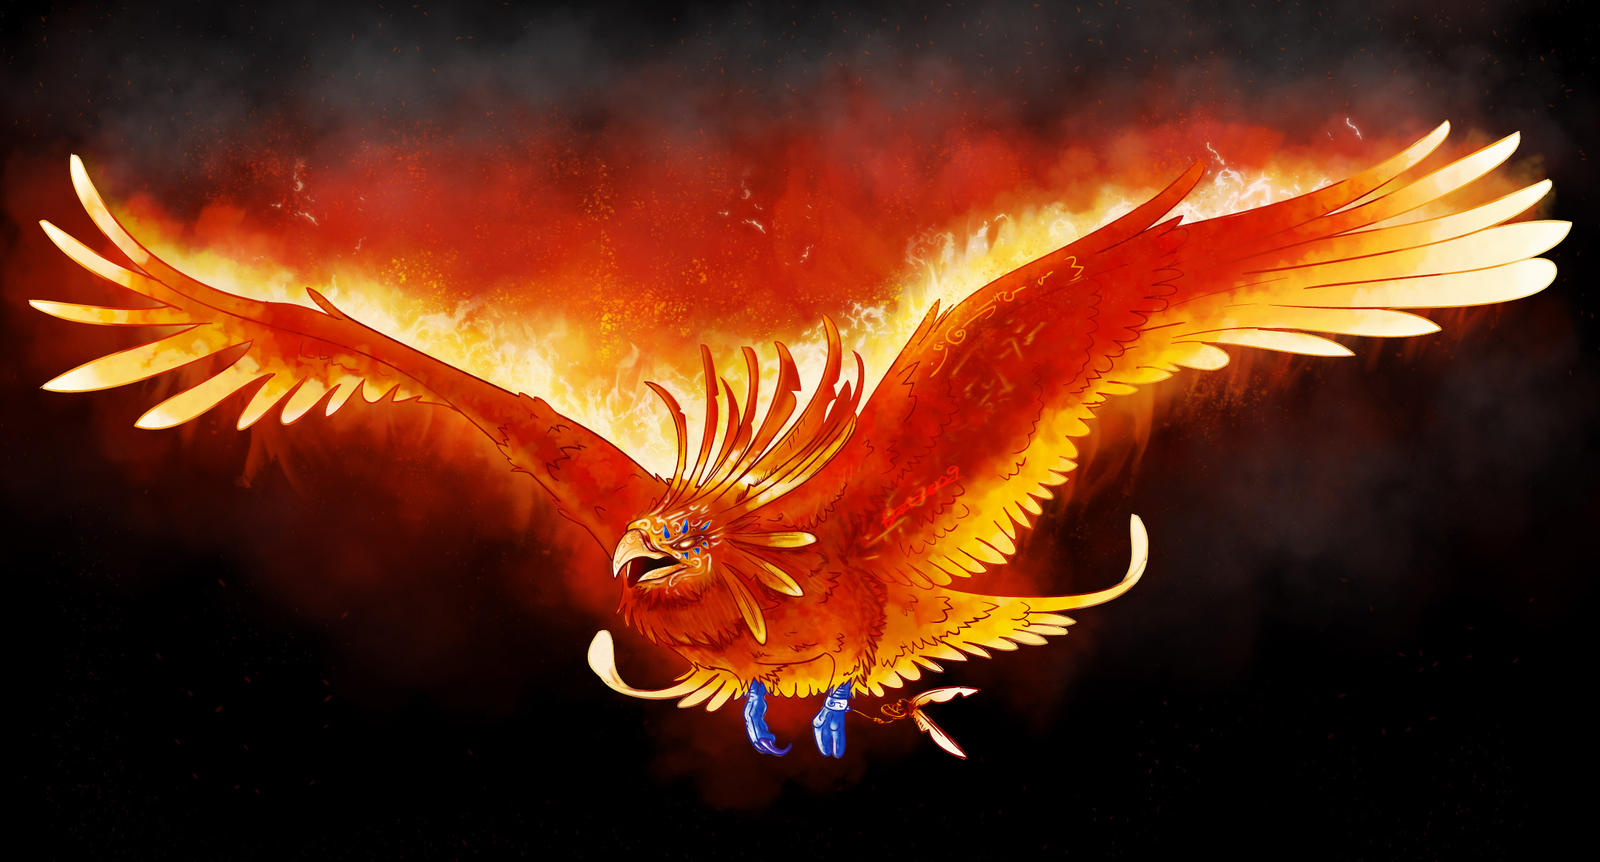 Widely known Mythical Creatures: Blogpost # 6: Phoenix